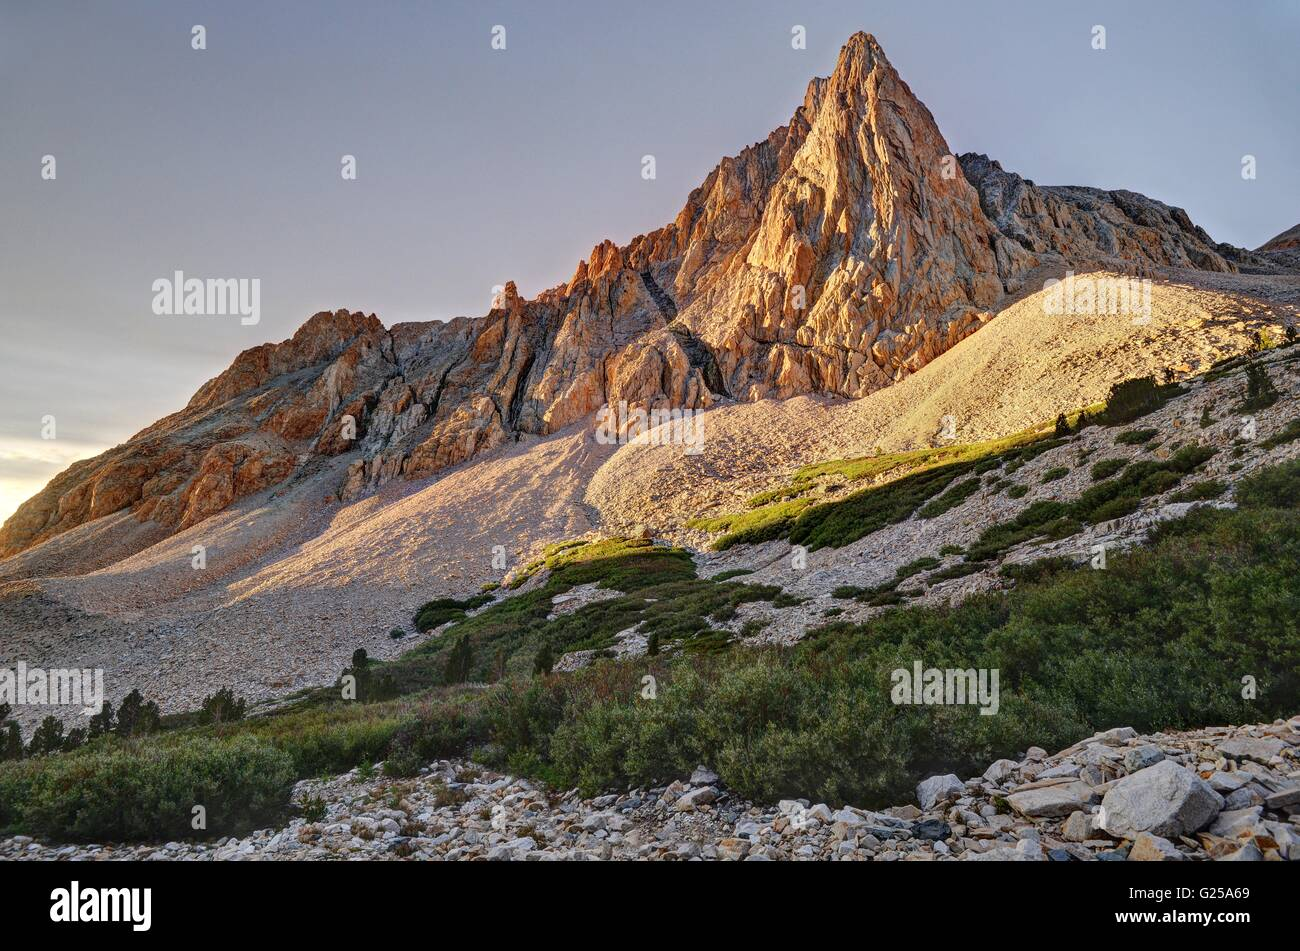 The Prominent Tower in Upper Taboose Creek at sunrise, Inyo National Forest, California, America, USA - Stock Image